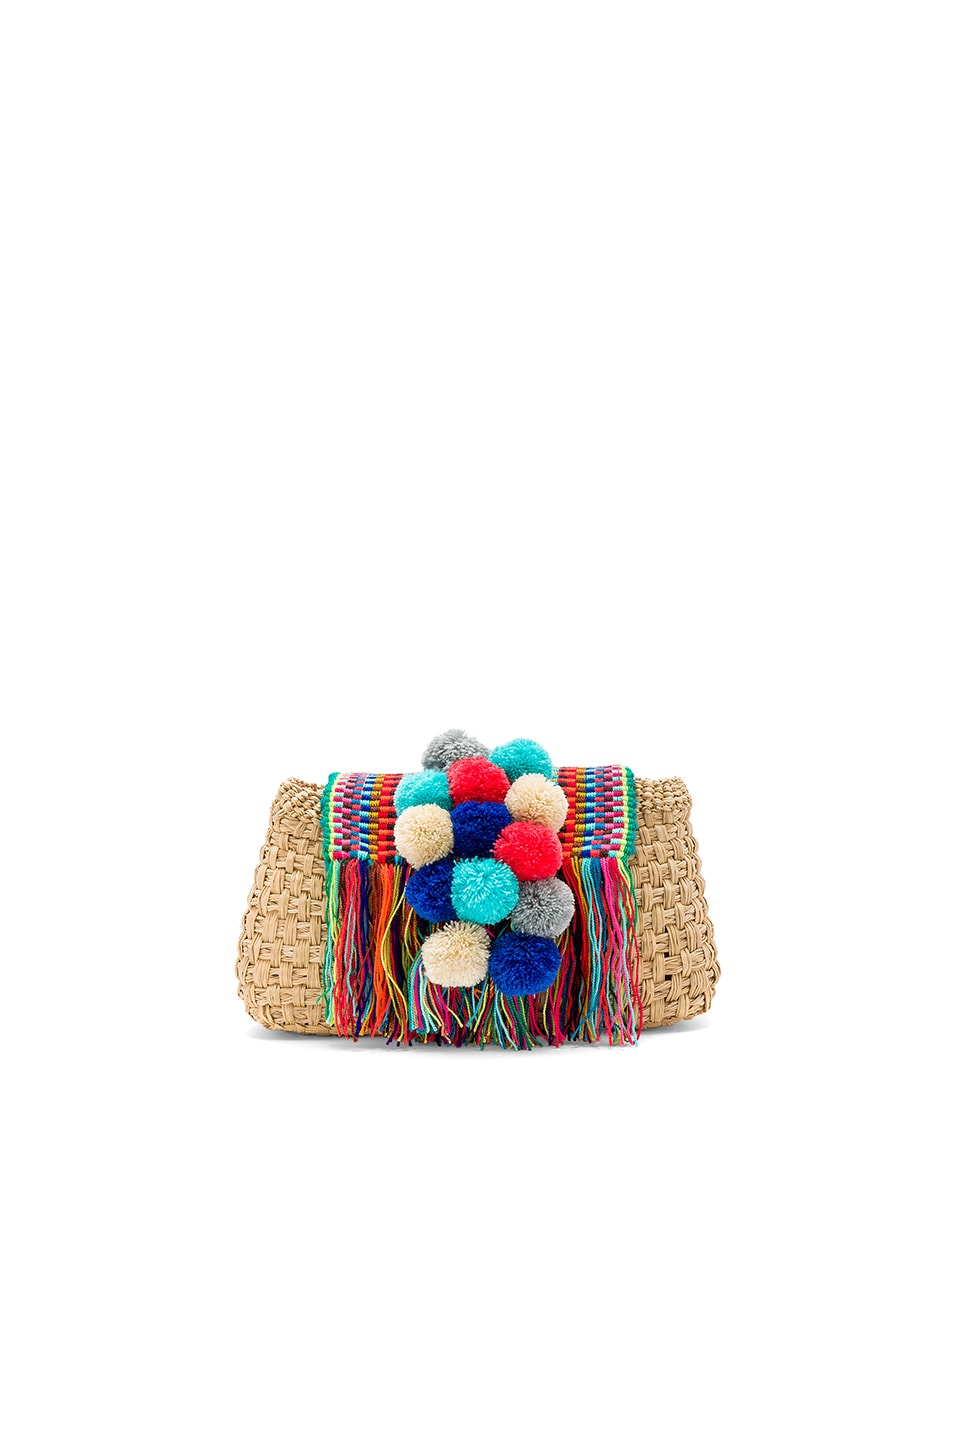 Pom Pom Clutch by Caffe